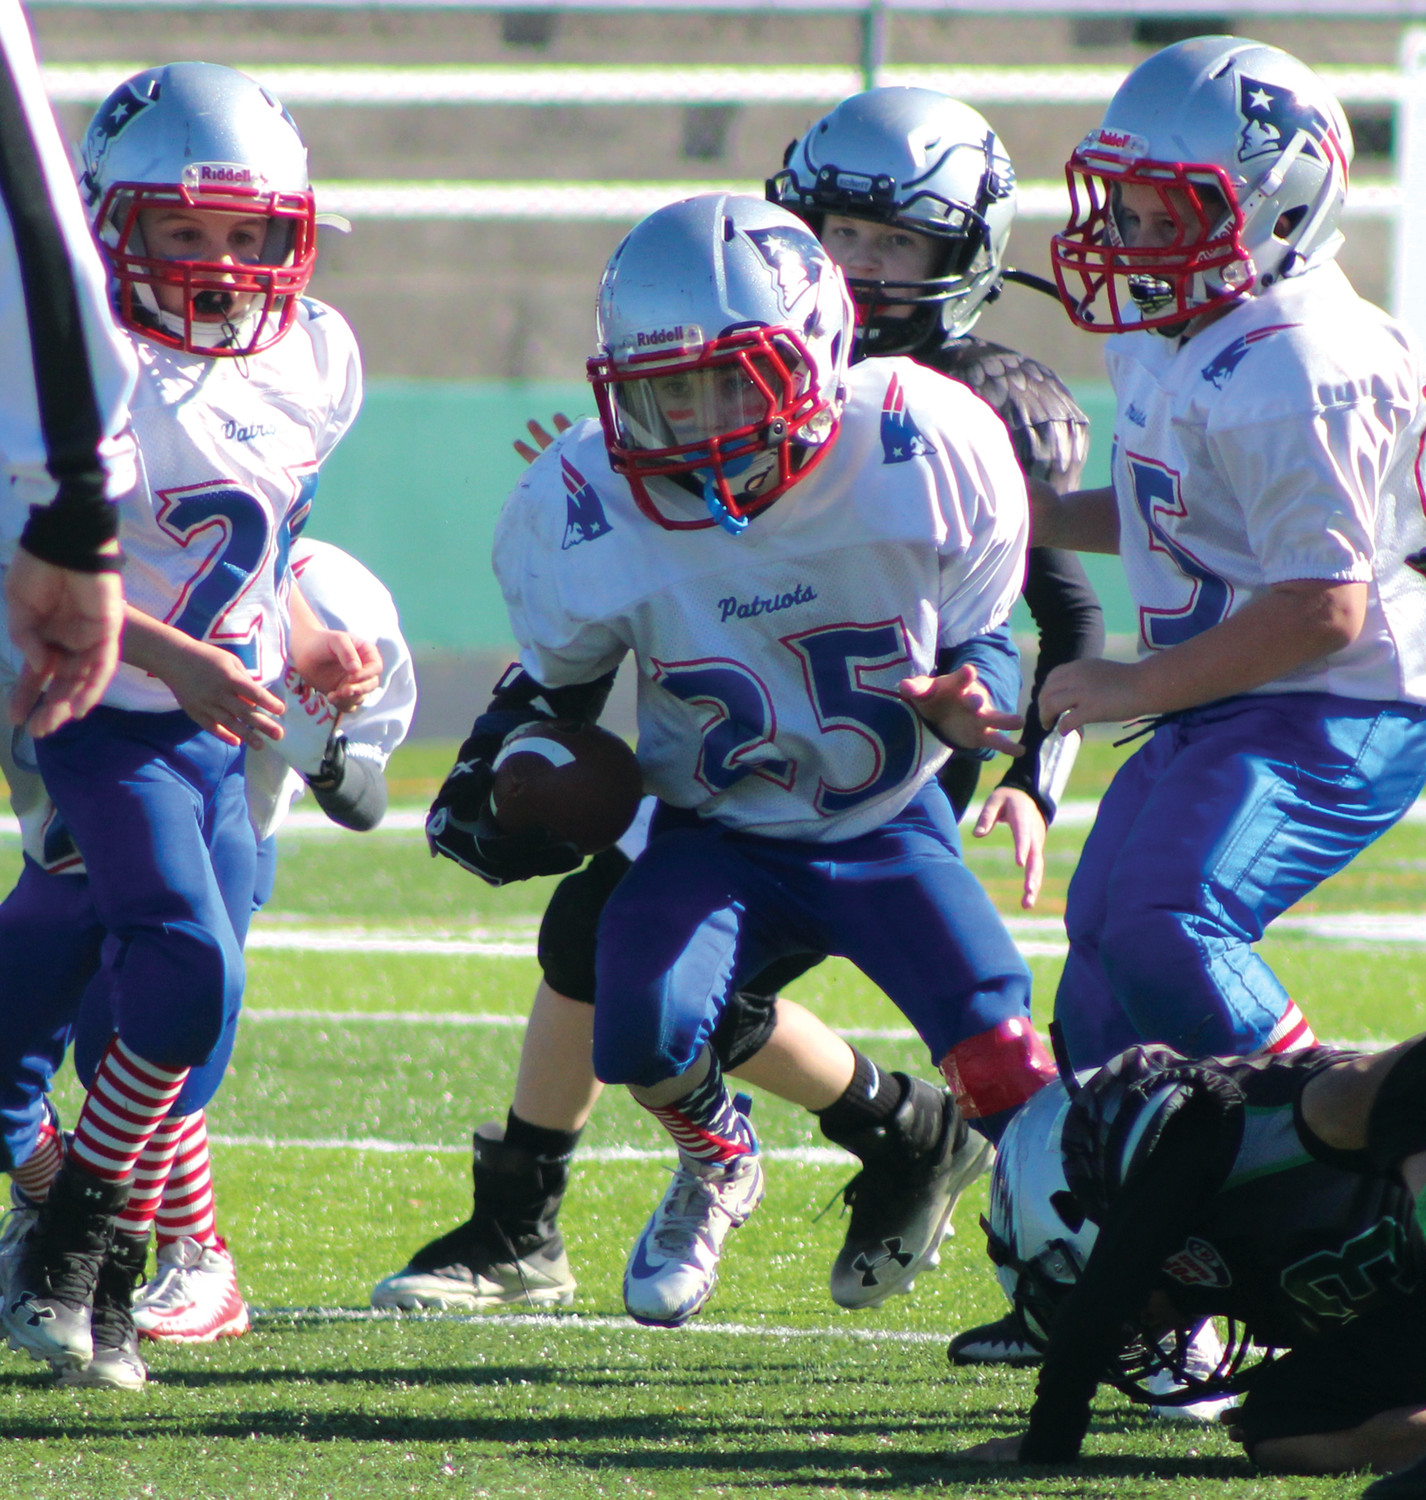 UP THE MIDDLE: A PAL 8U back picks up some yards on Sunday afternoon.